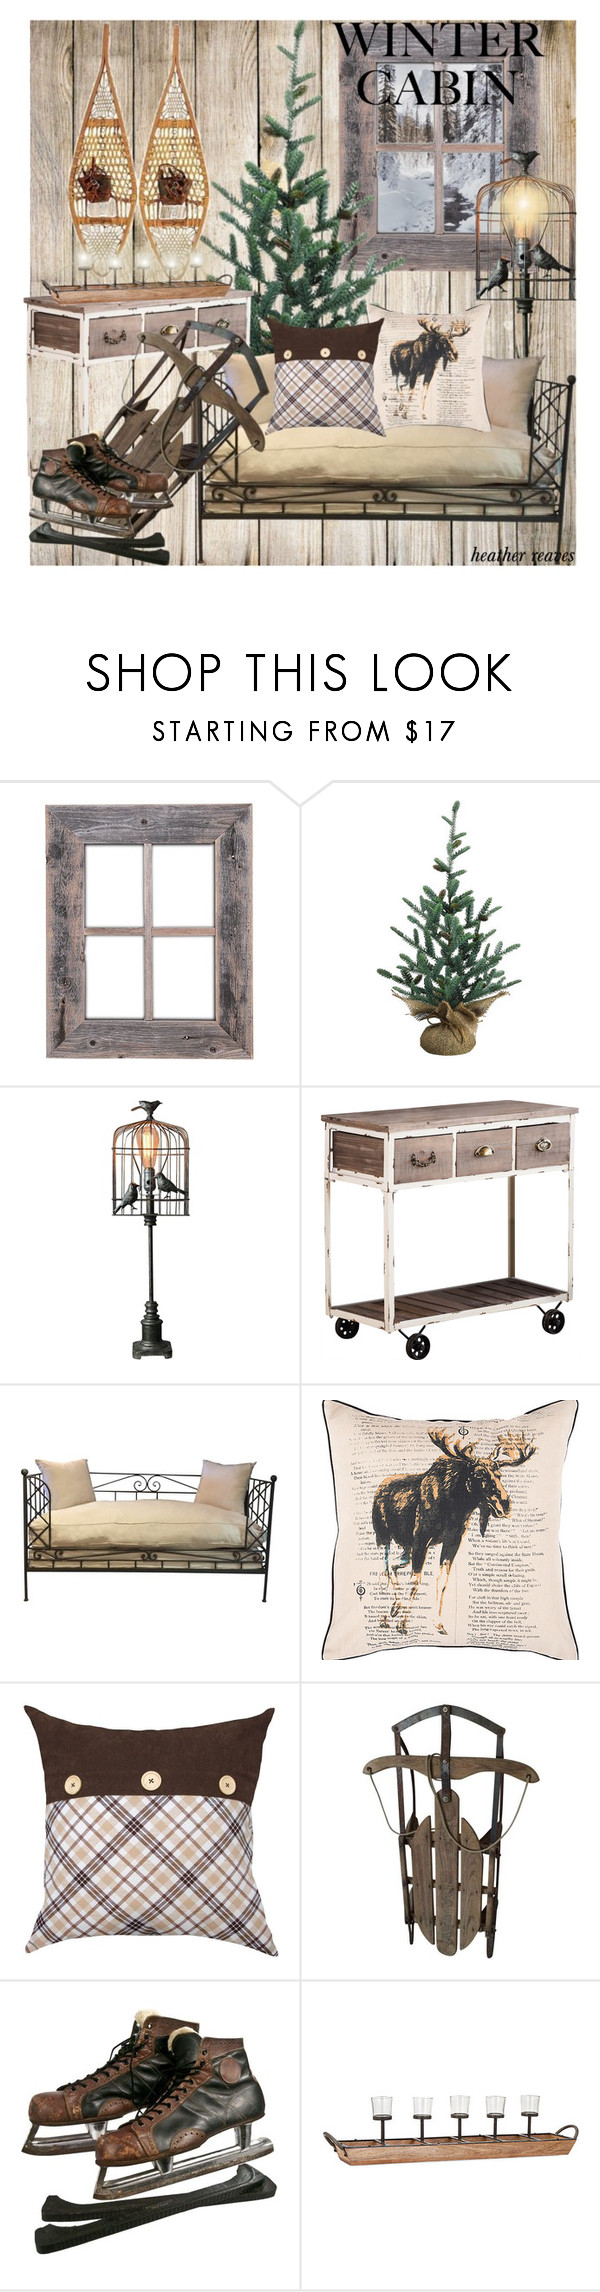 """Winter Cabin"" by heather-reaves ❤ liked on Polyvore featuring interior, interiors, interior design, home, home decor, interior decorating, Universal Lighting and Decor, Dot & Bo, Colordrift and wintercabin"